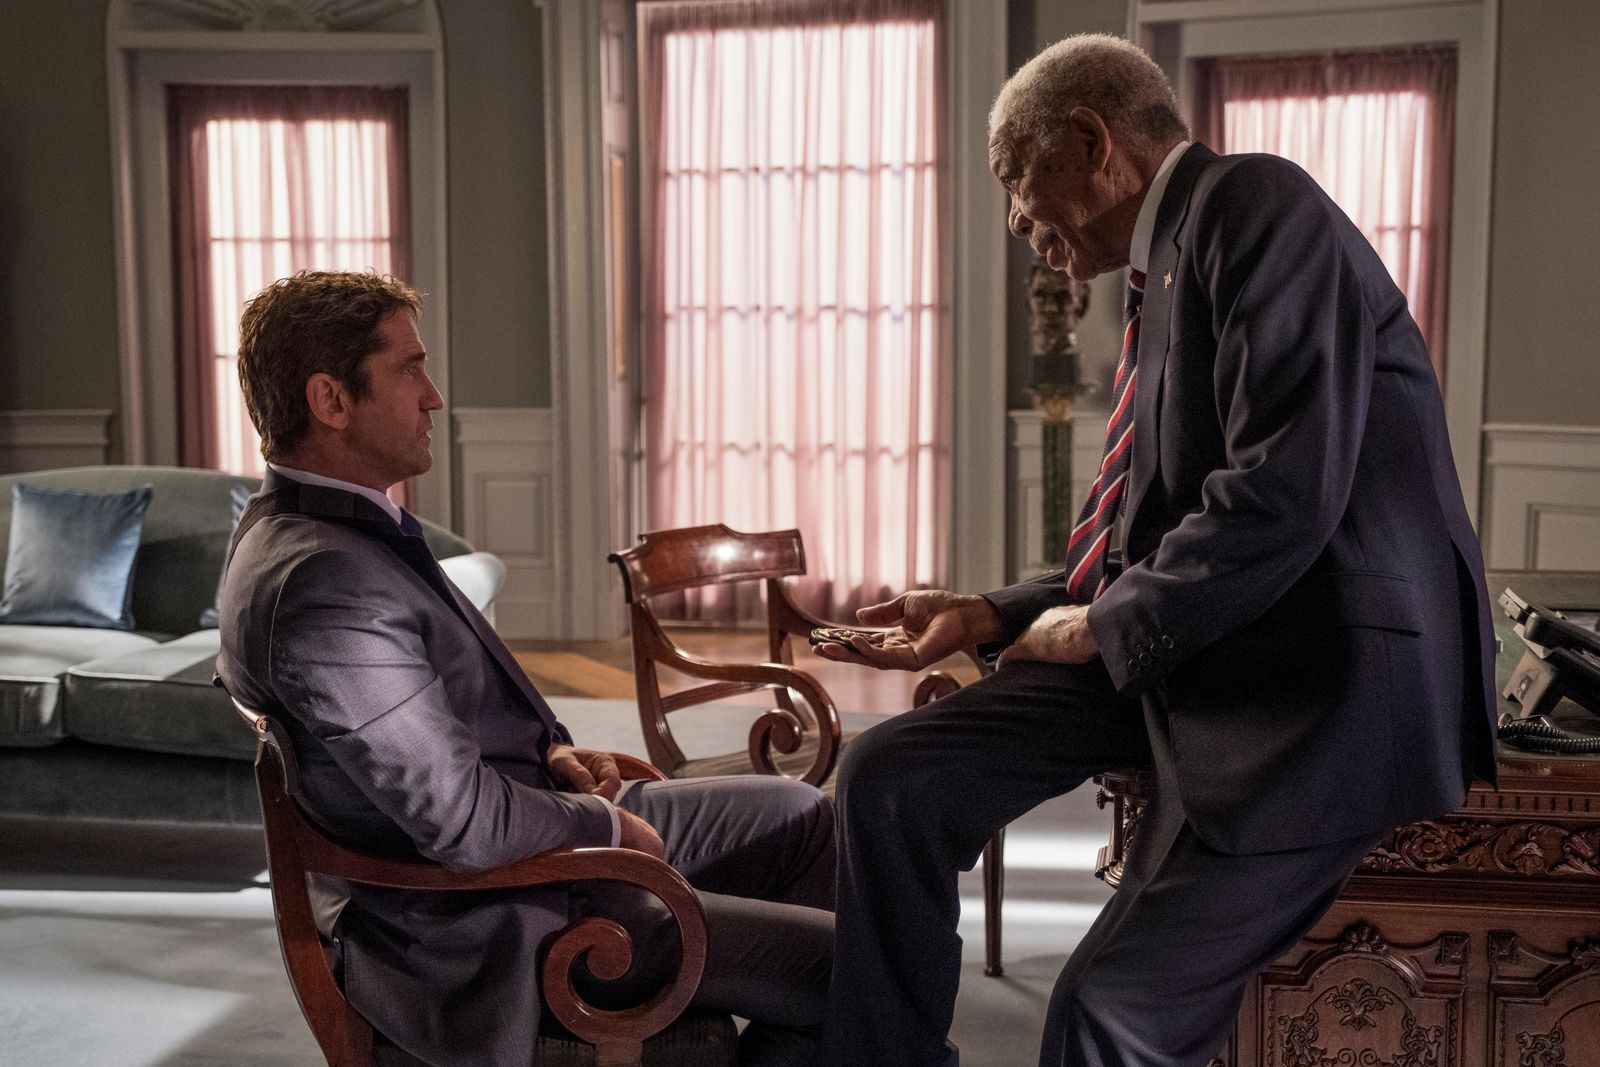 Morgan Freeman and Gerard Butler in Lionsgate's ANGEL HAS FALLEN (Photo: Lionsgate)